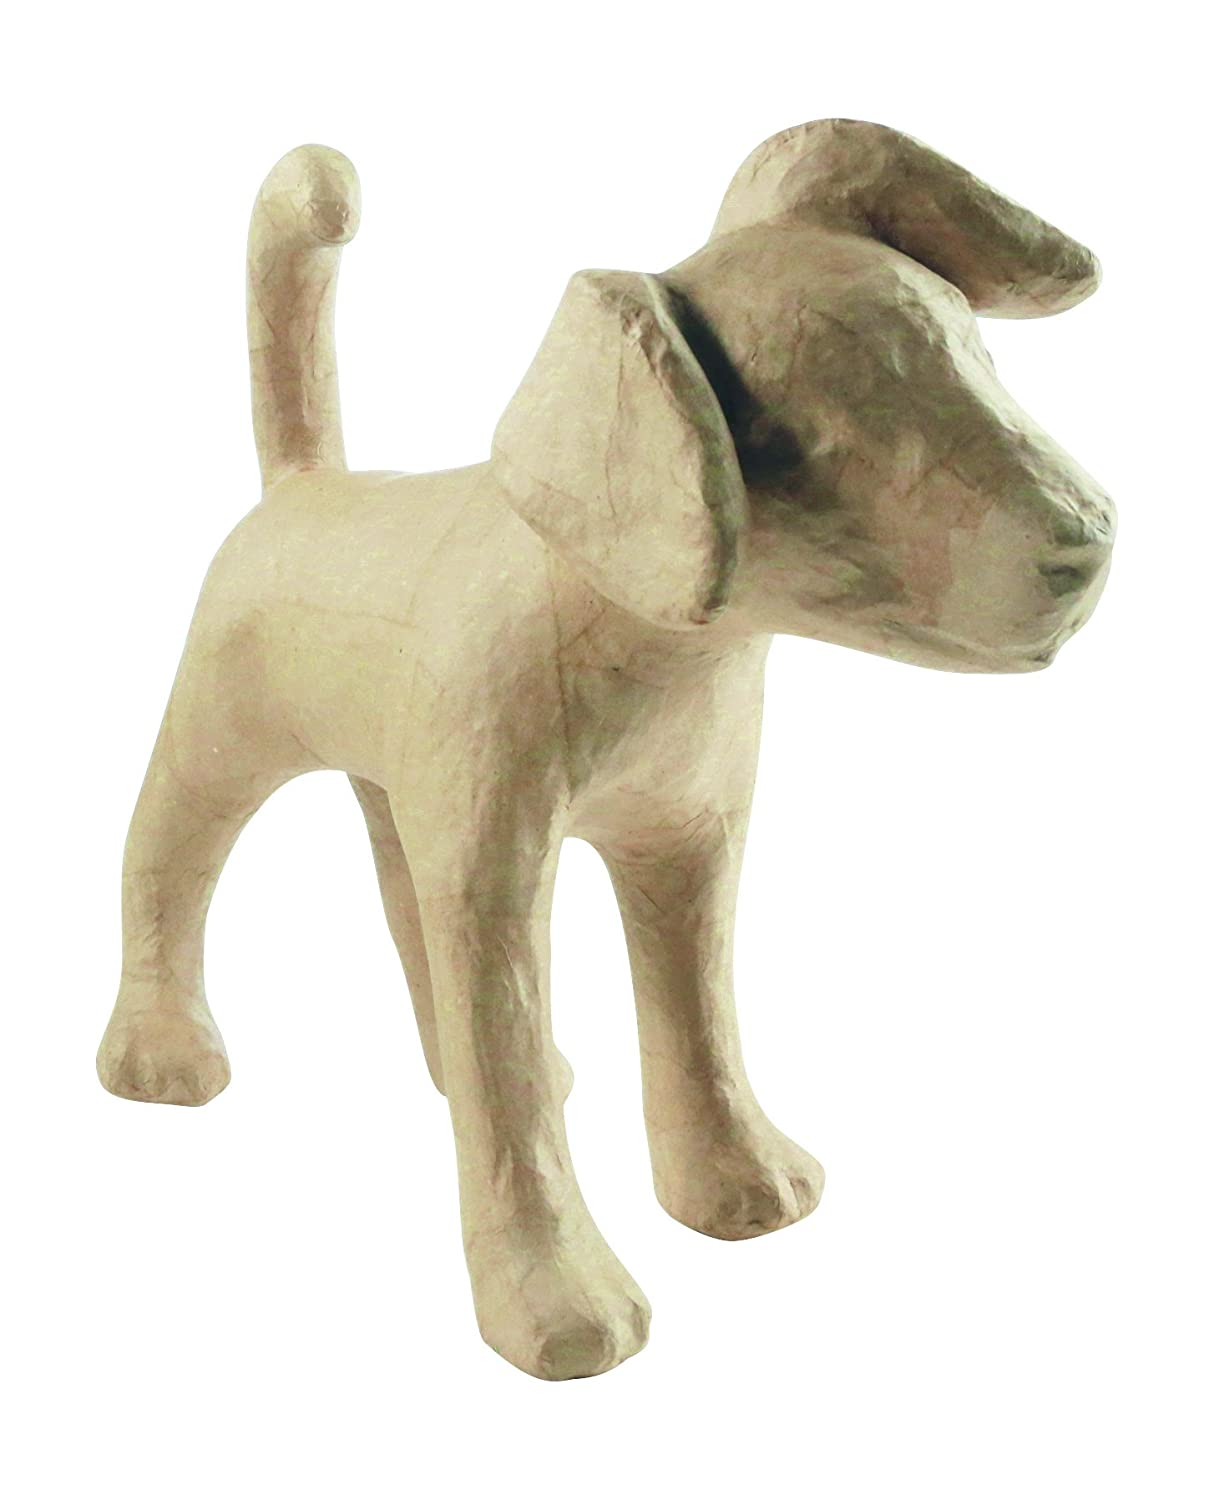 Decopatch LA008 Decoupage Papier Mache Animal Large Size Jack Russell Dog